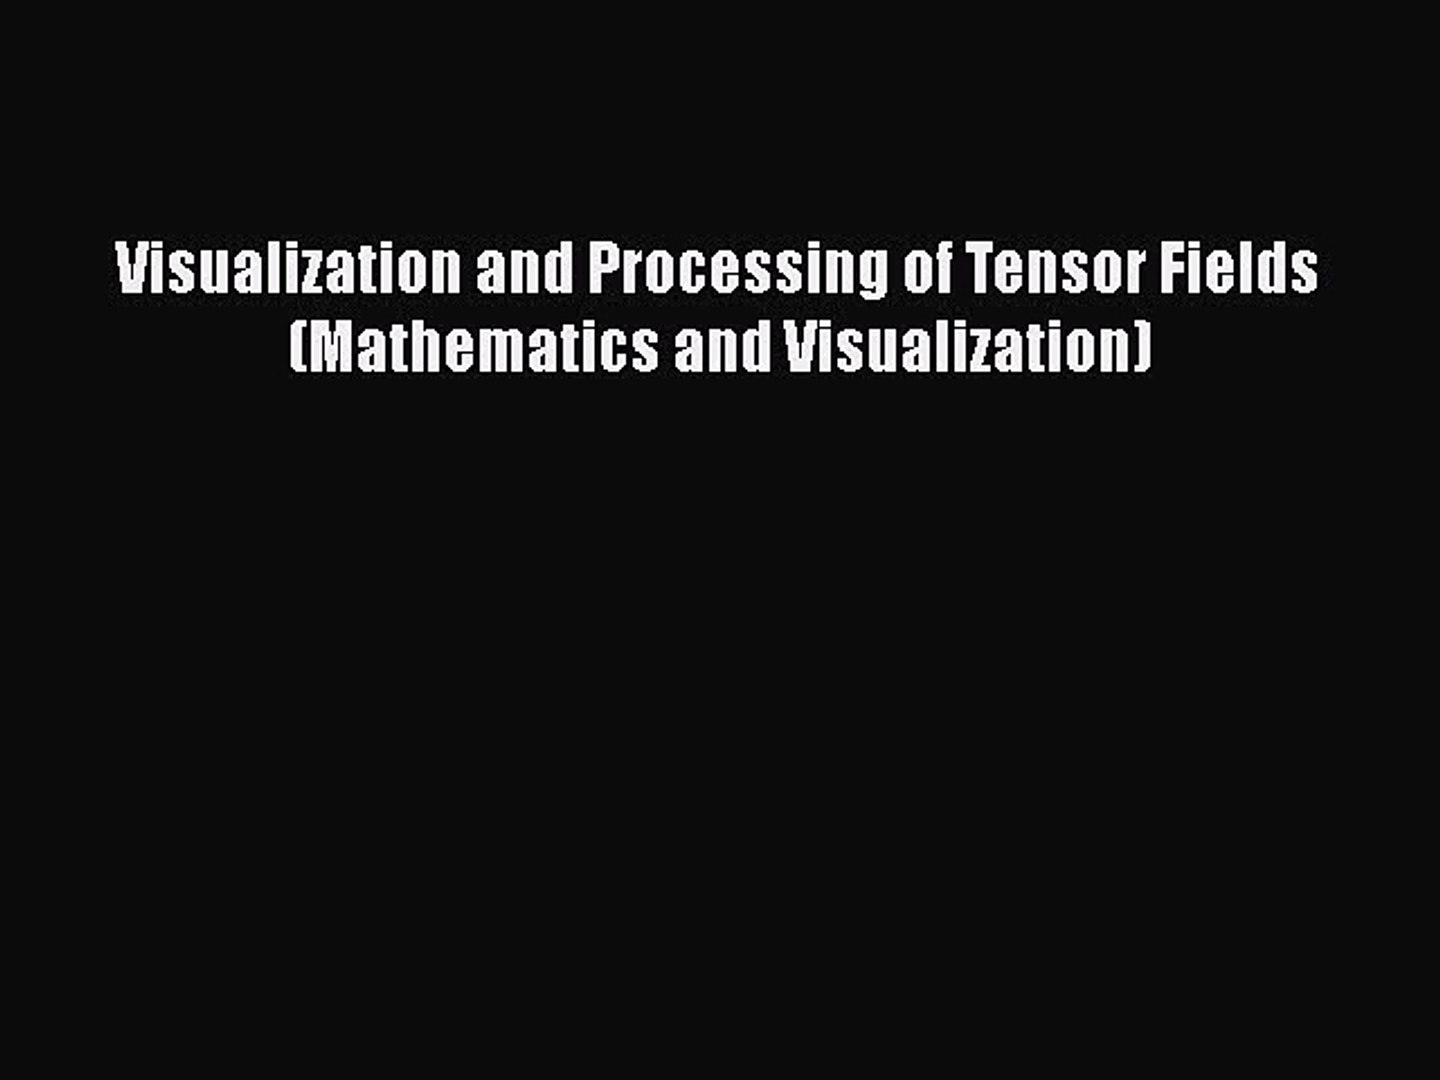 Visualization and Processing of Tensor Fields